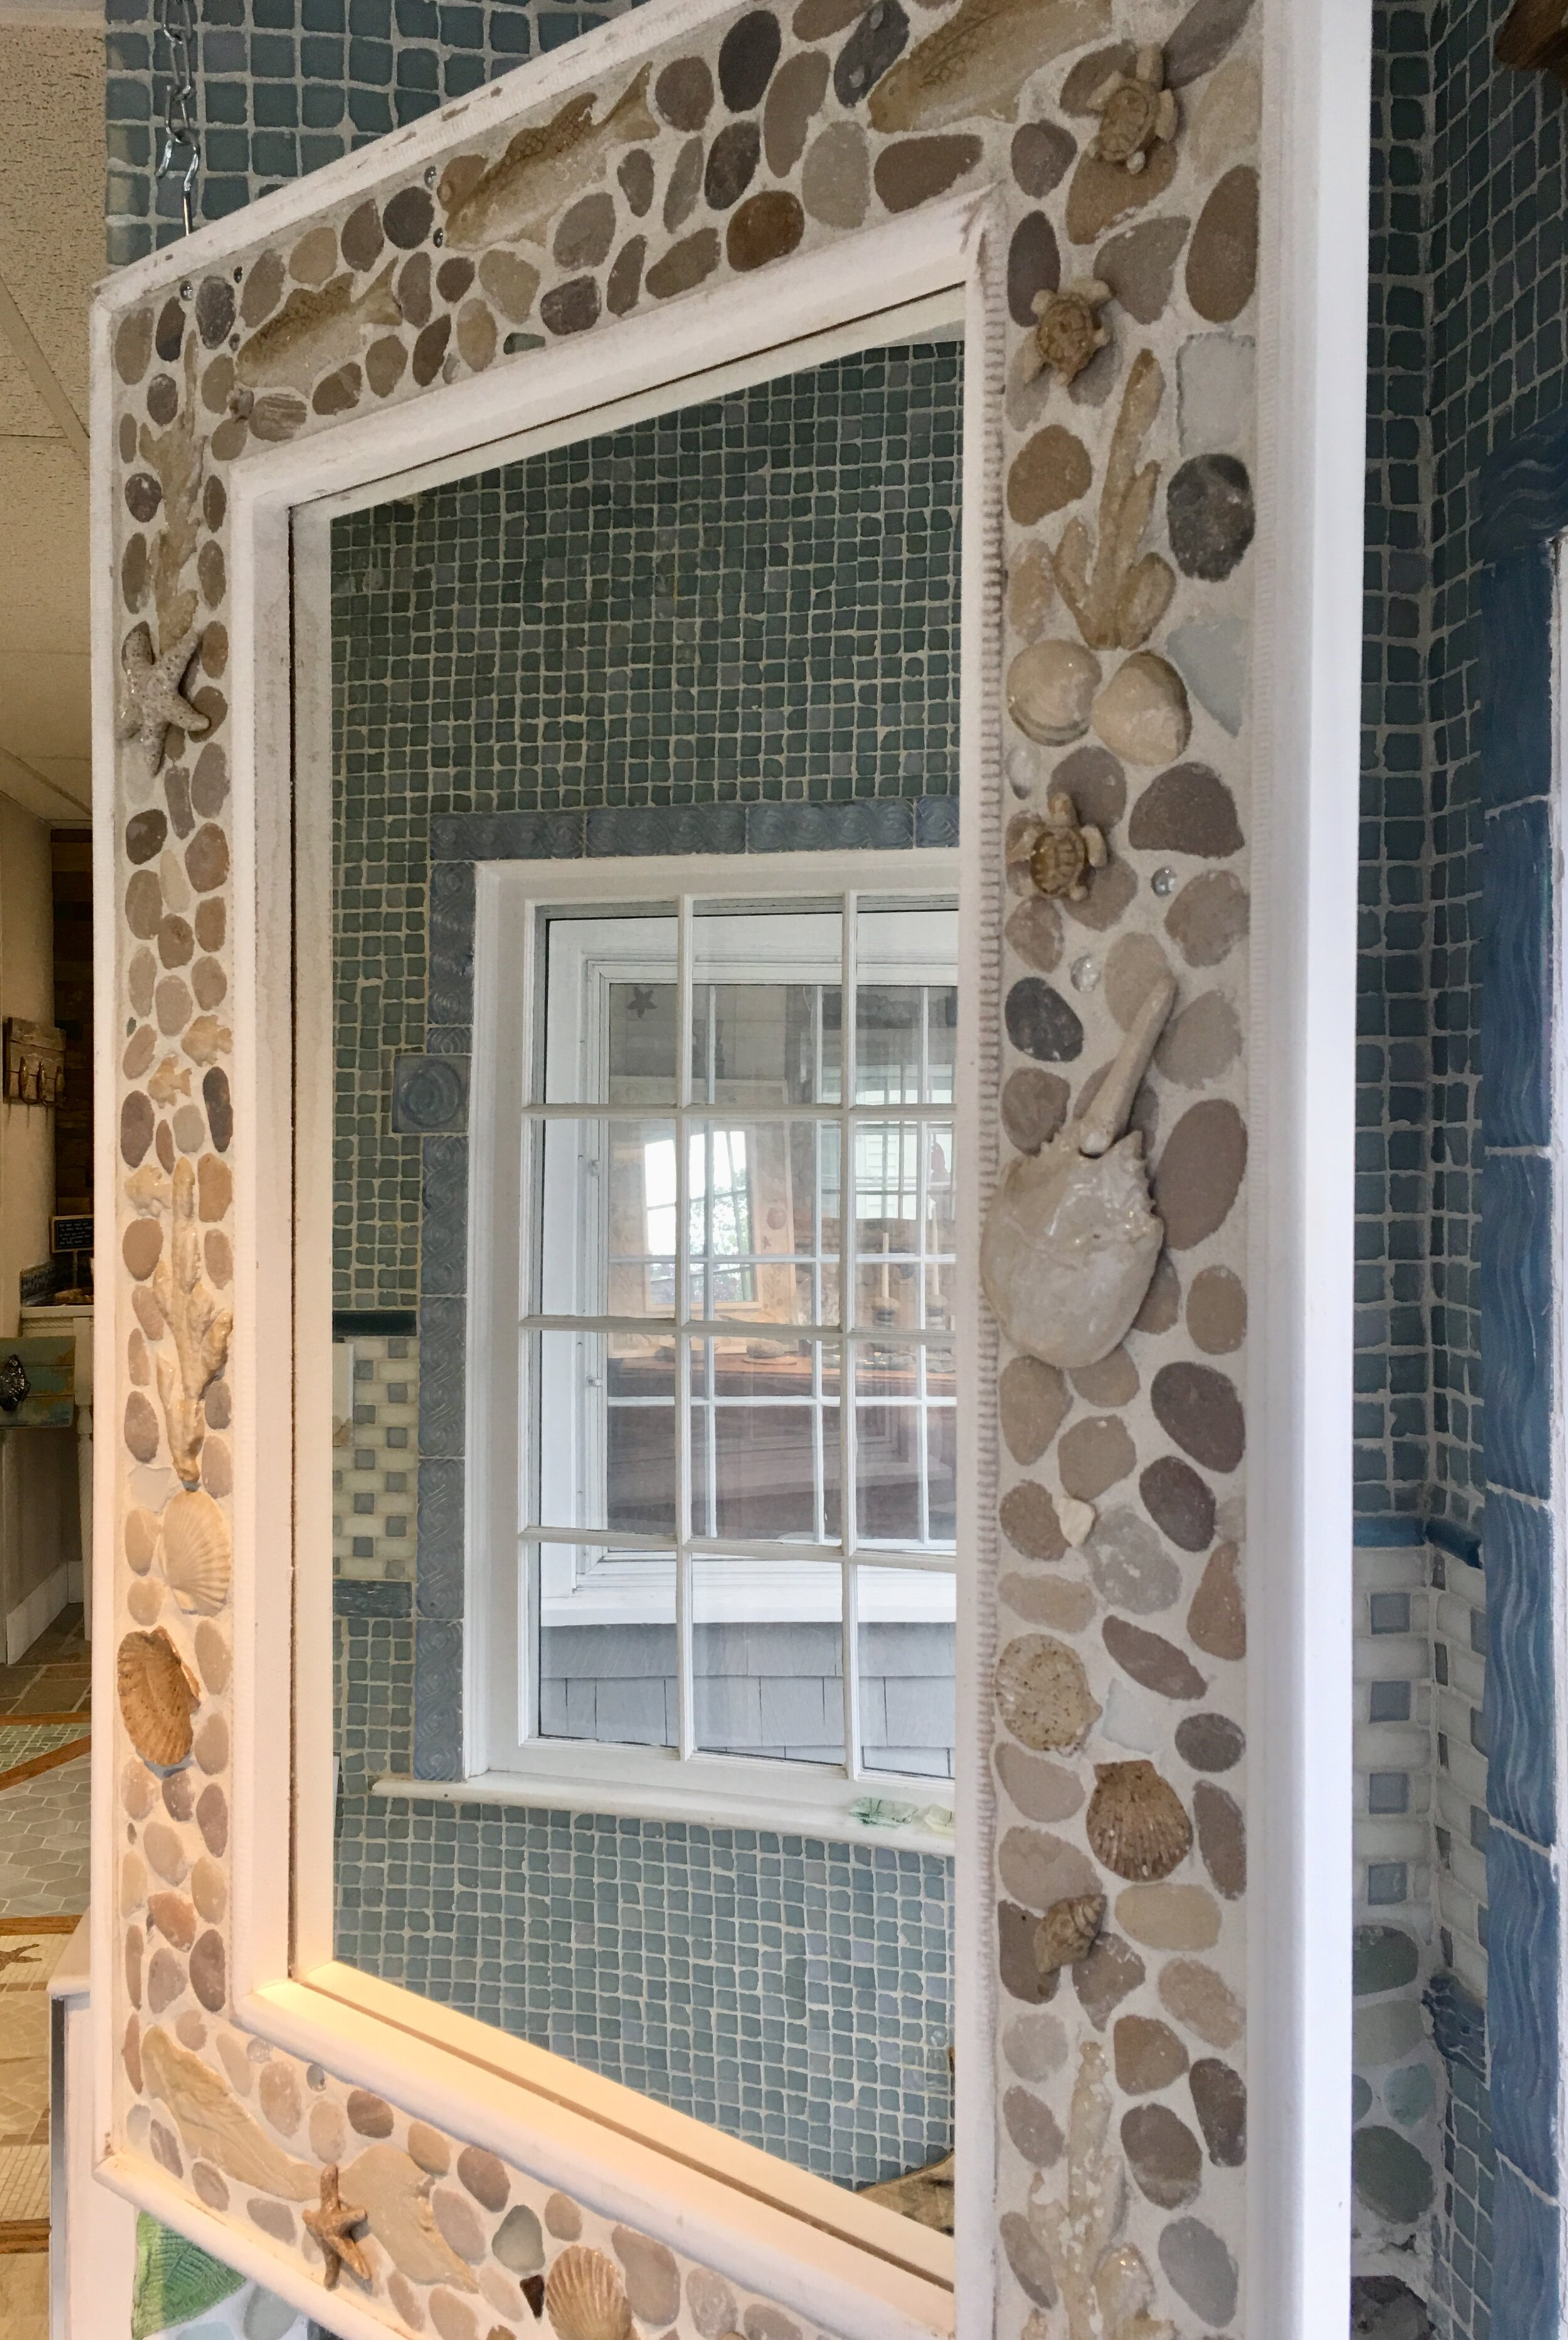 Cape Cod Tile Works Custom tiles  In Harwich Ma Ask for Lane Meehan and tell Schoolhouse Construction